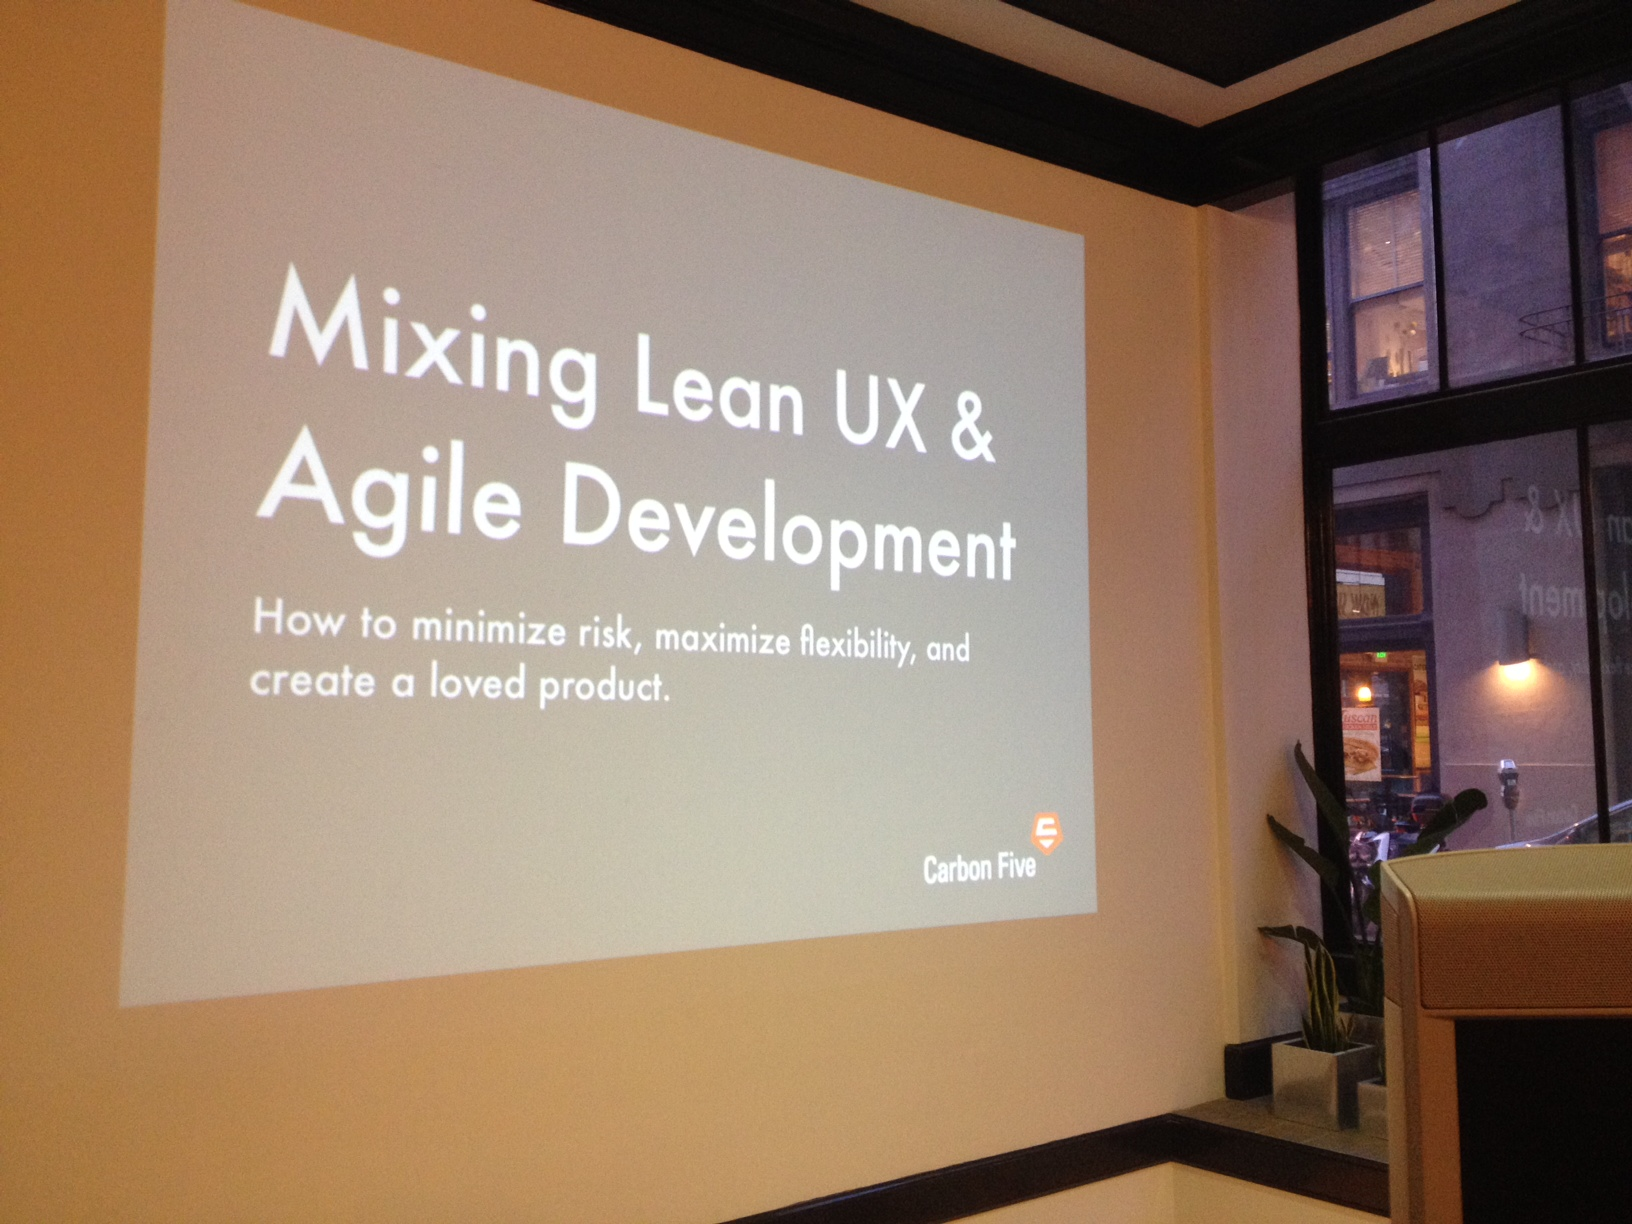 Mixing Lean UX with Agile Development